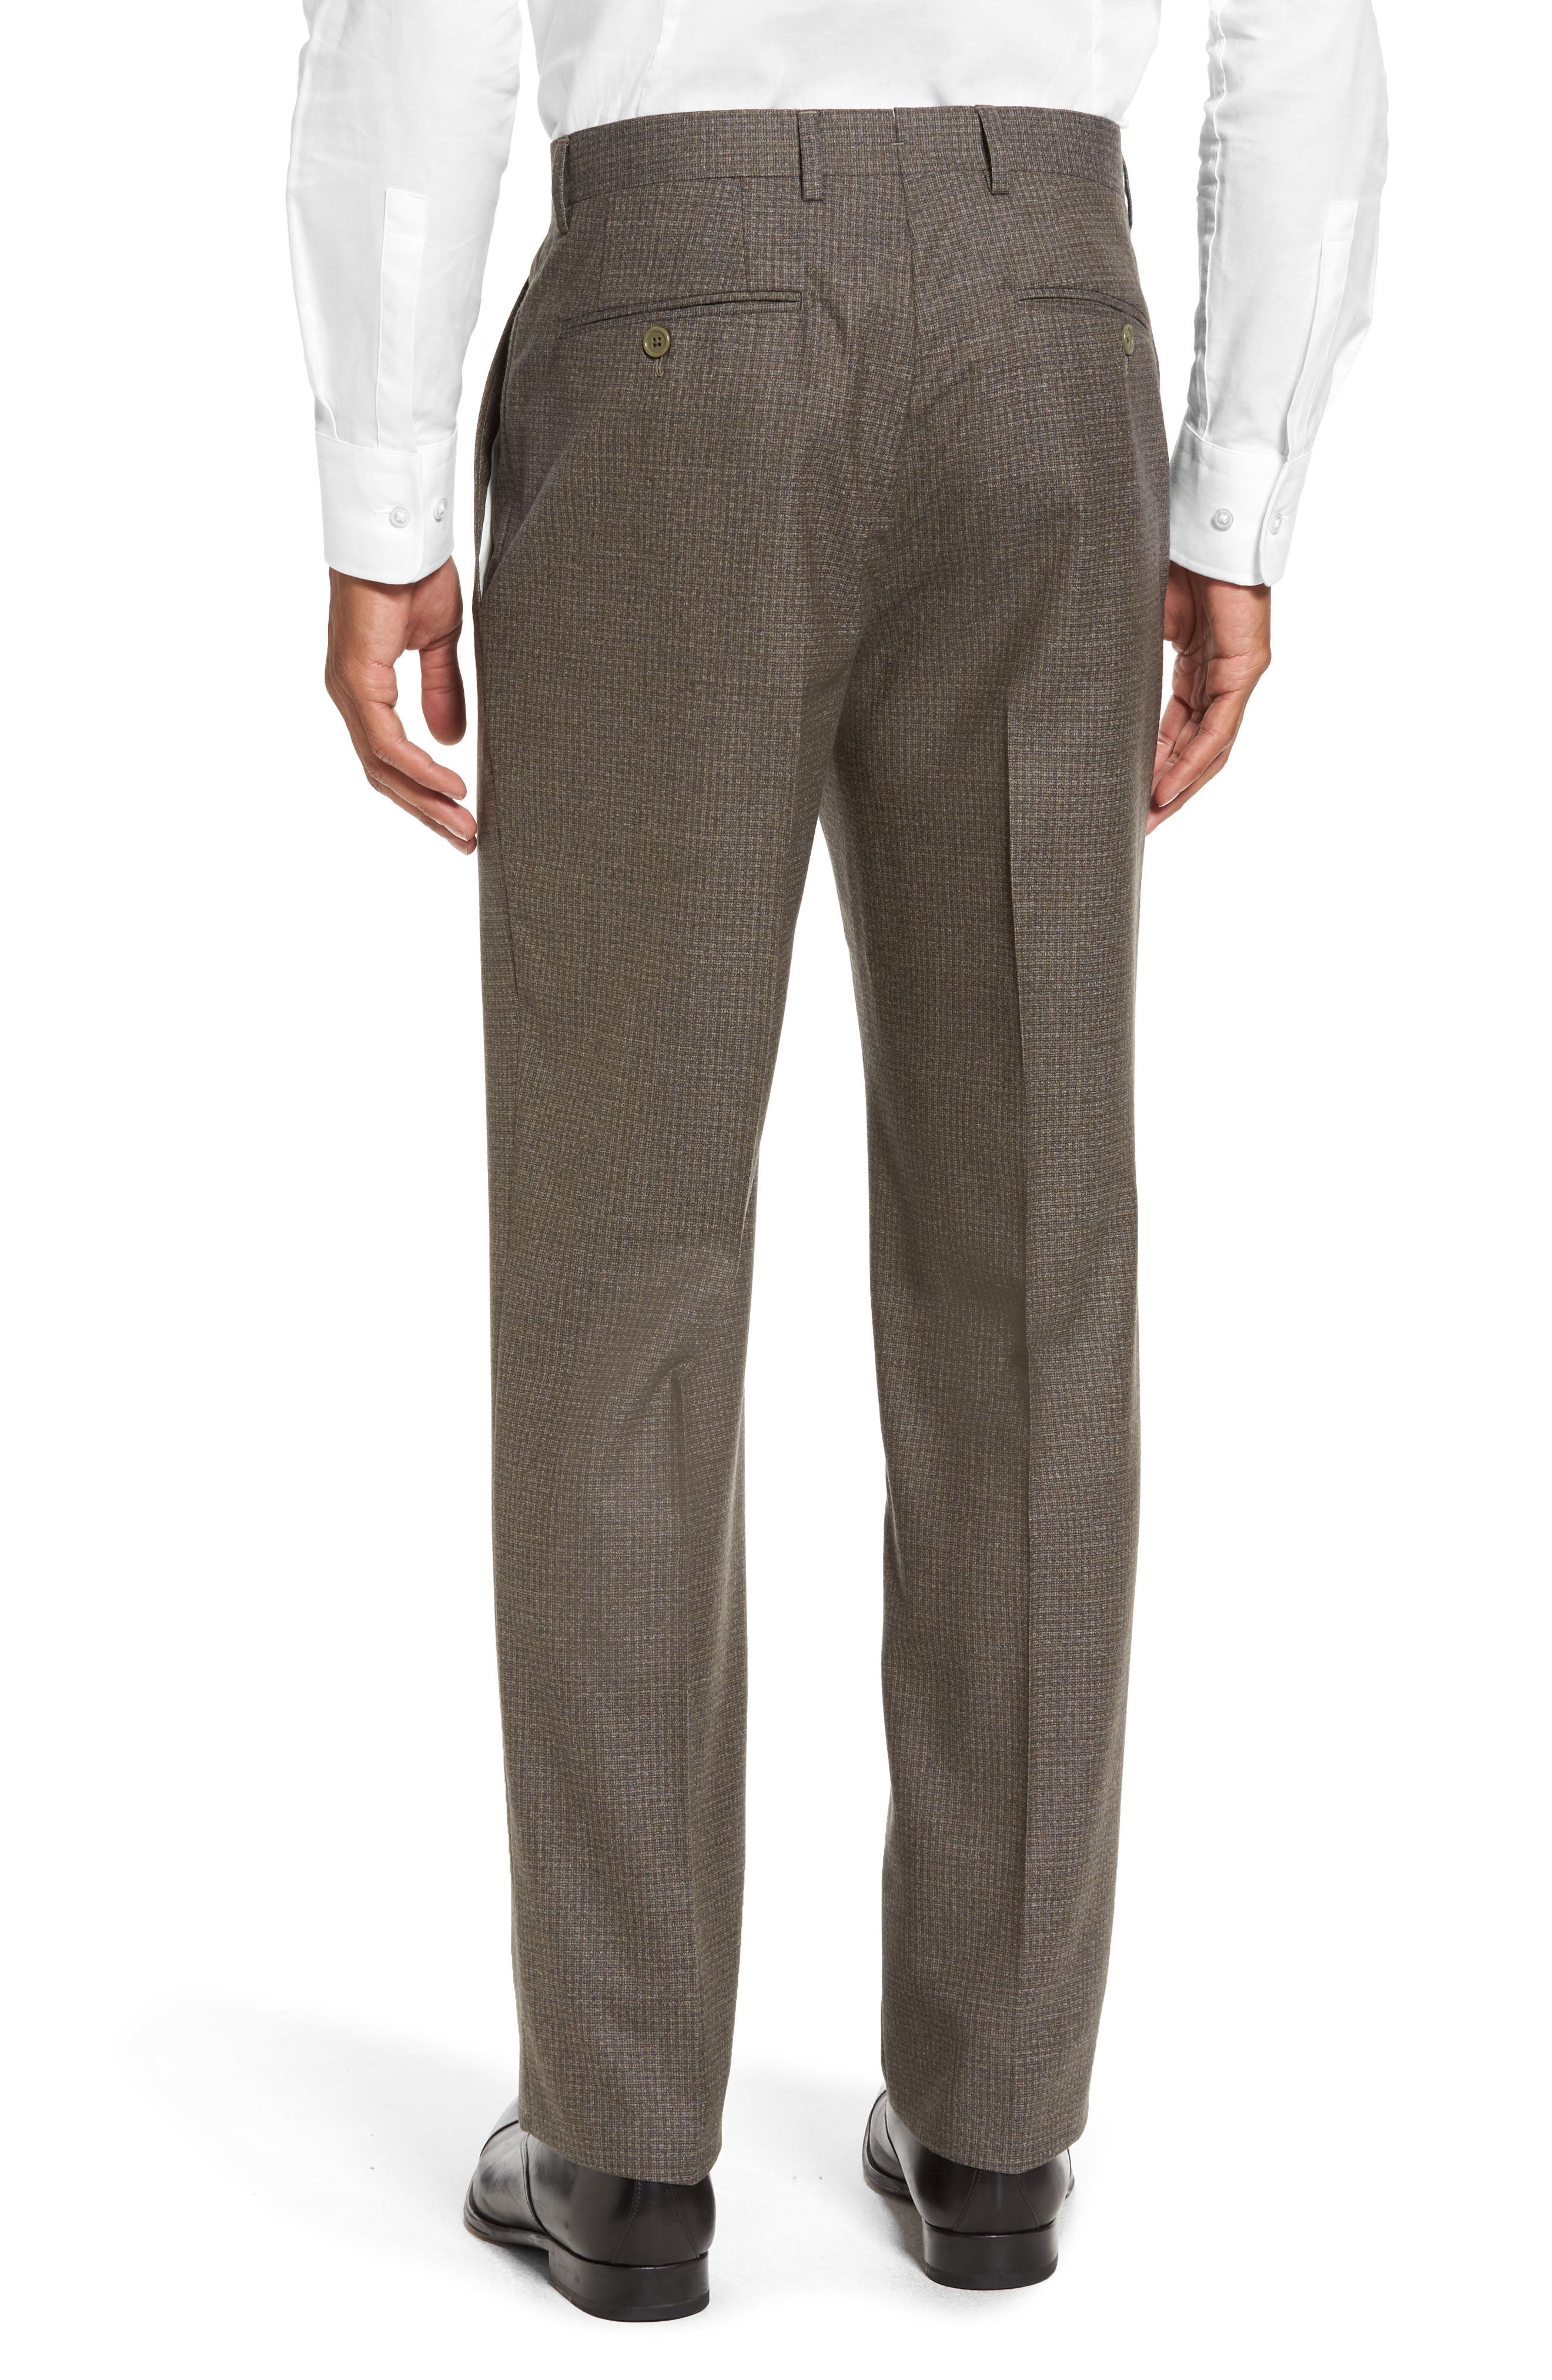 Romero Regular Fit Flat Front Trousers,                             Alternate thumbnail 2, color,                             Taupe